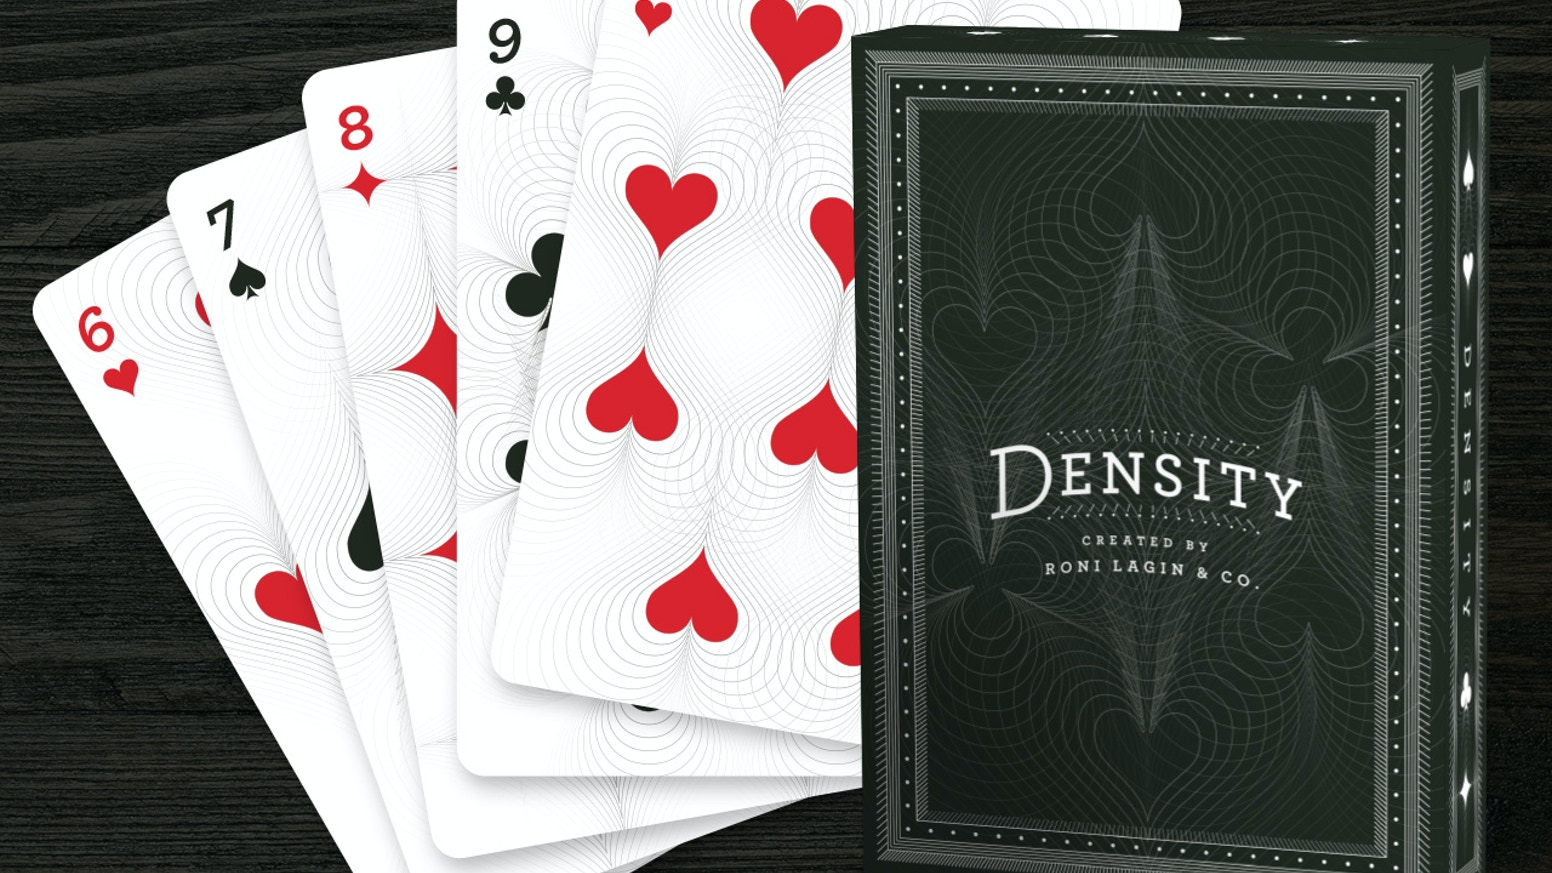 Limited edition custom-designed deck of playing cards where suit symbols are manipulated into intersecting shapes and patterns.